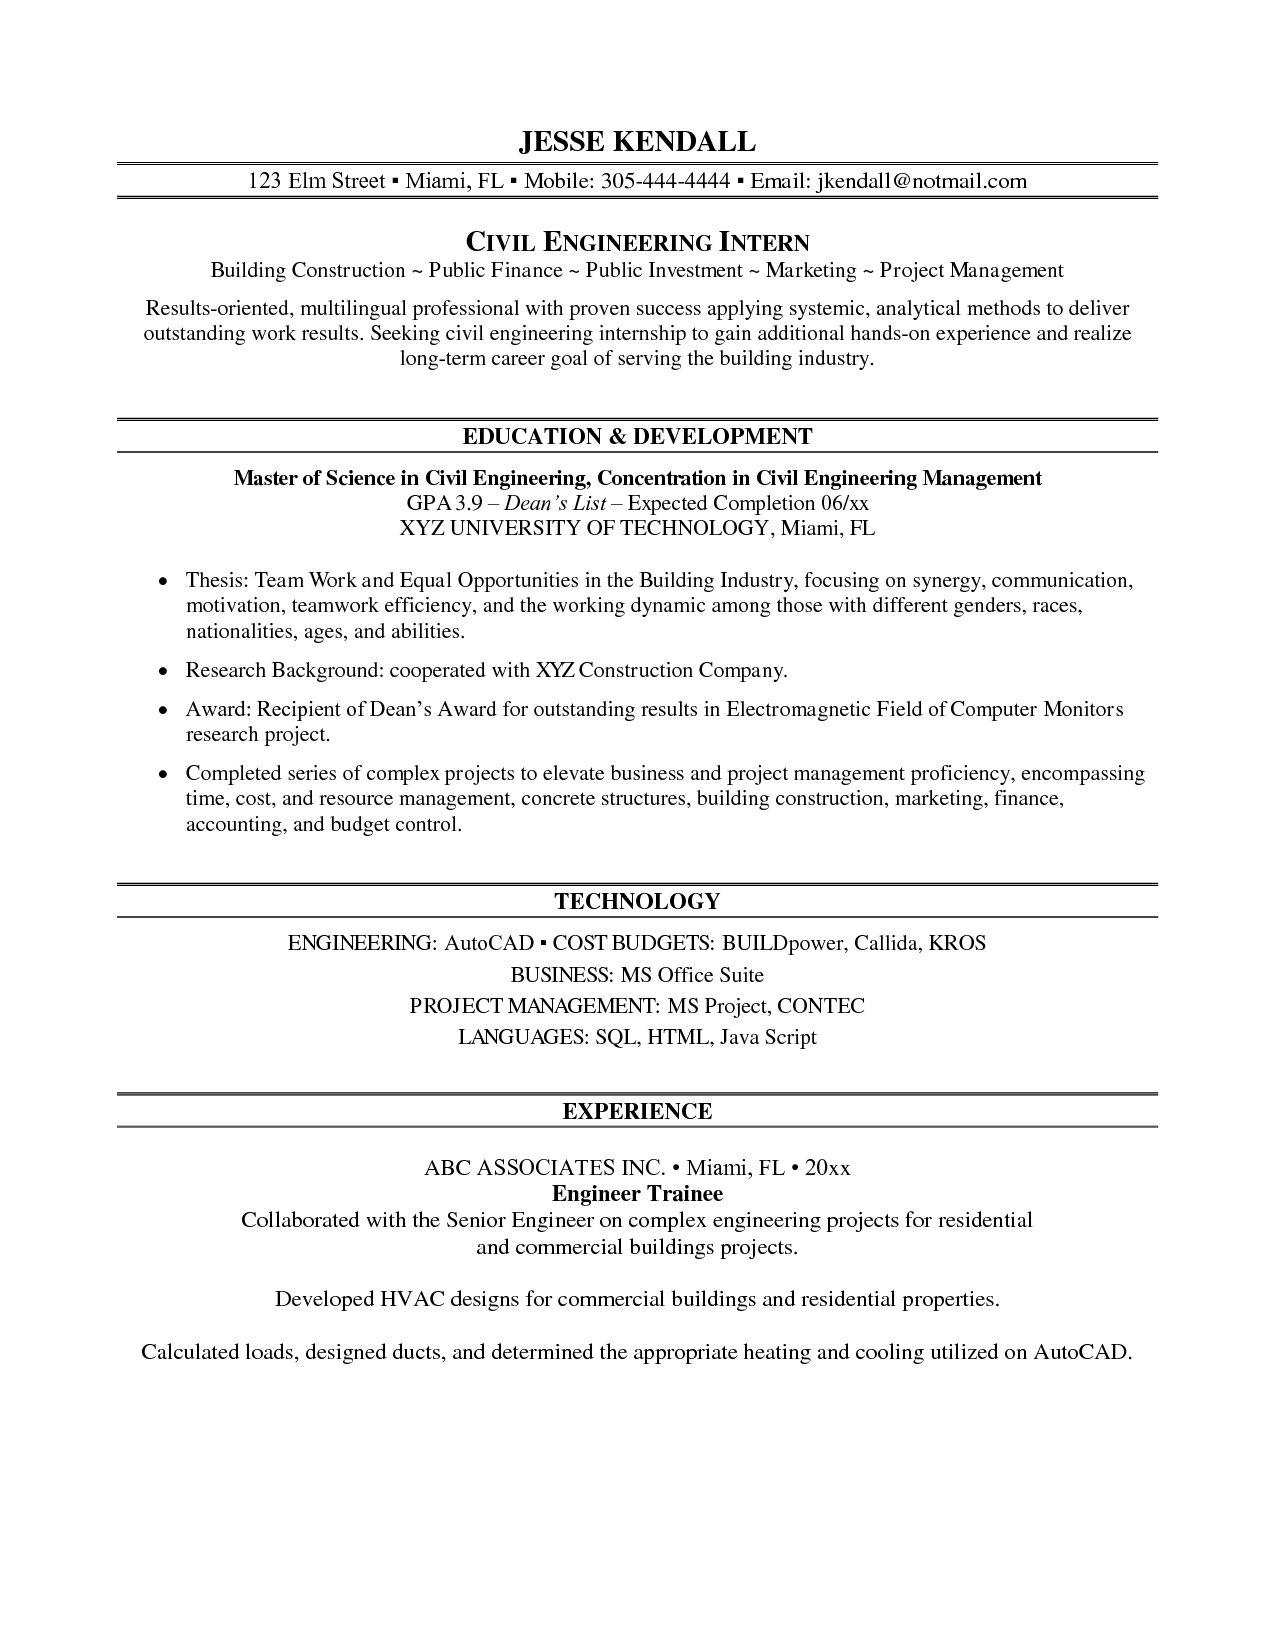 Internship On Resume Best Template Collection   Http://www.jobresume.website  Internship Resume Template